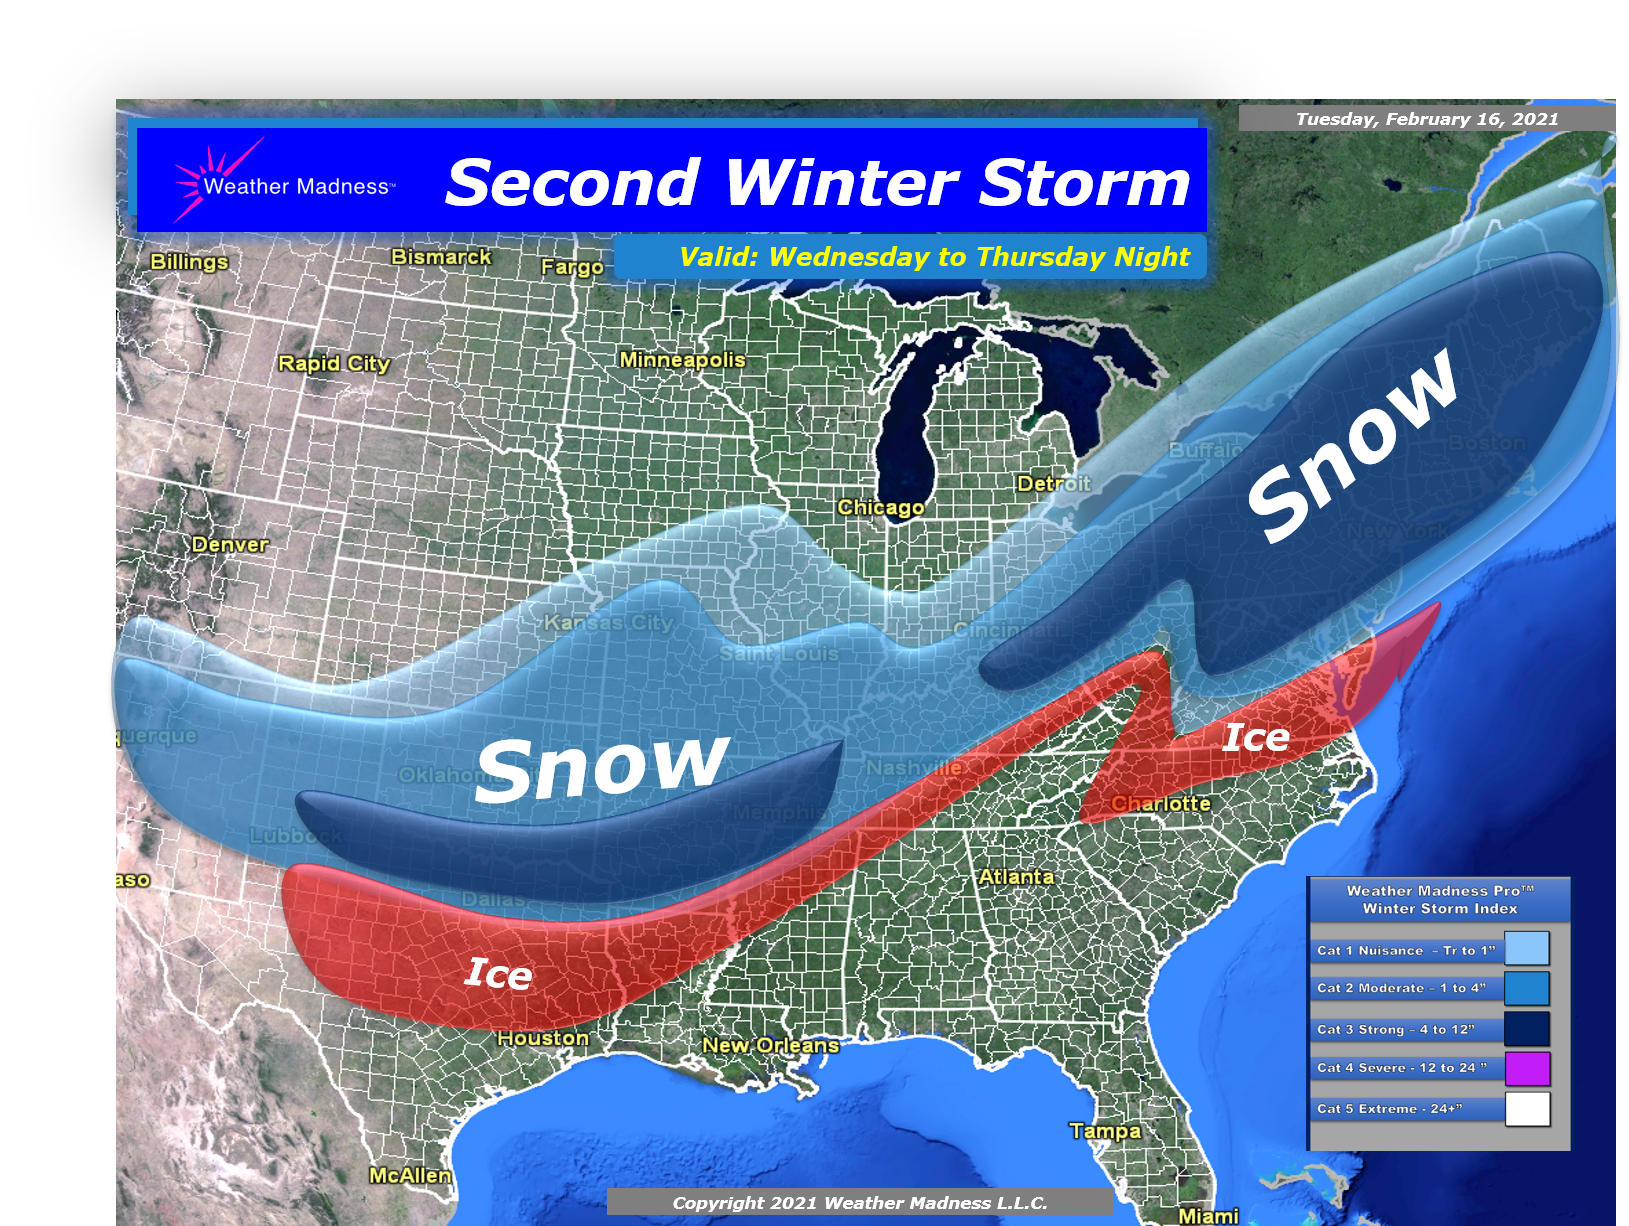 Snow Map for the Storm Wednesday to Thursday Night